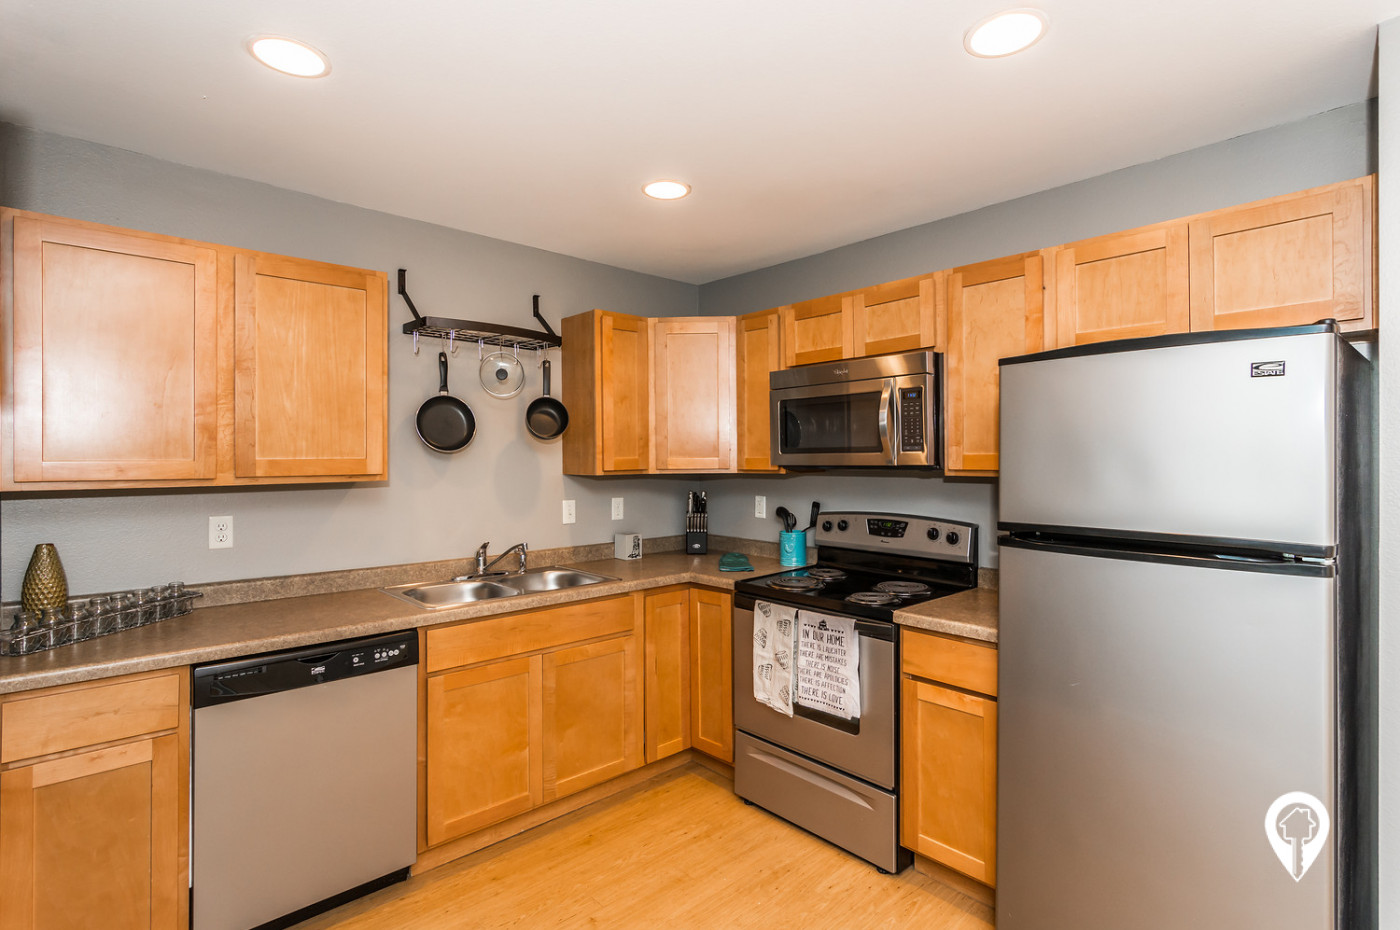 Ashland-Apartment-Homes-Stylish-Kitchens-With-Stainless-Steel-Appliances-Tons-Cabinet-Space